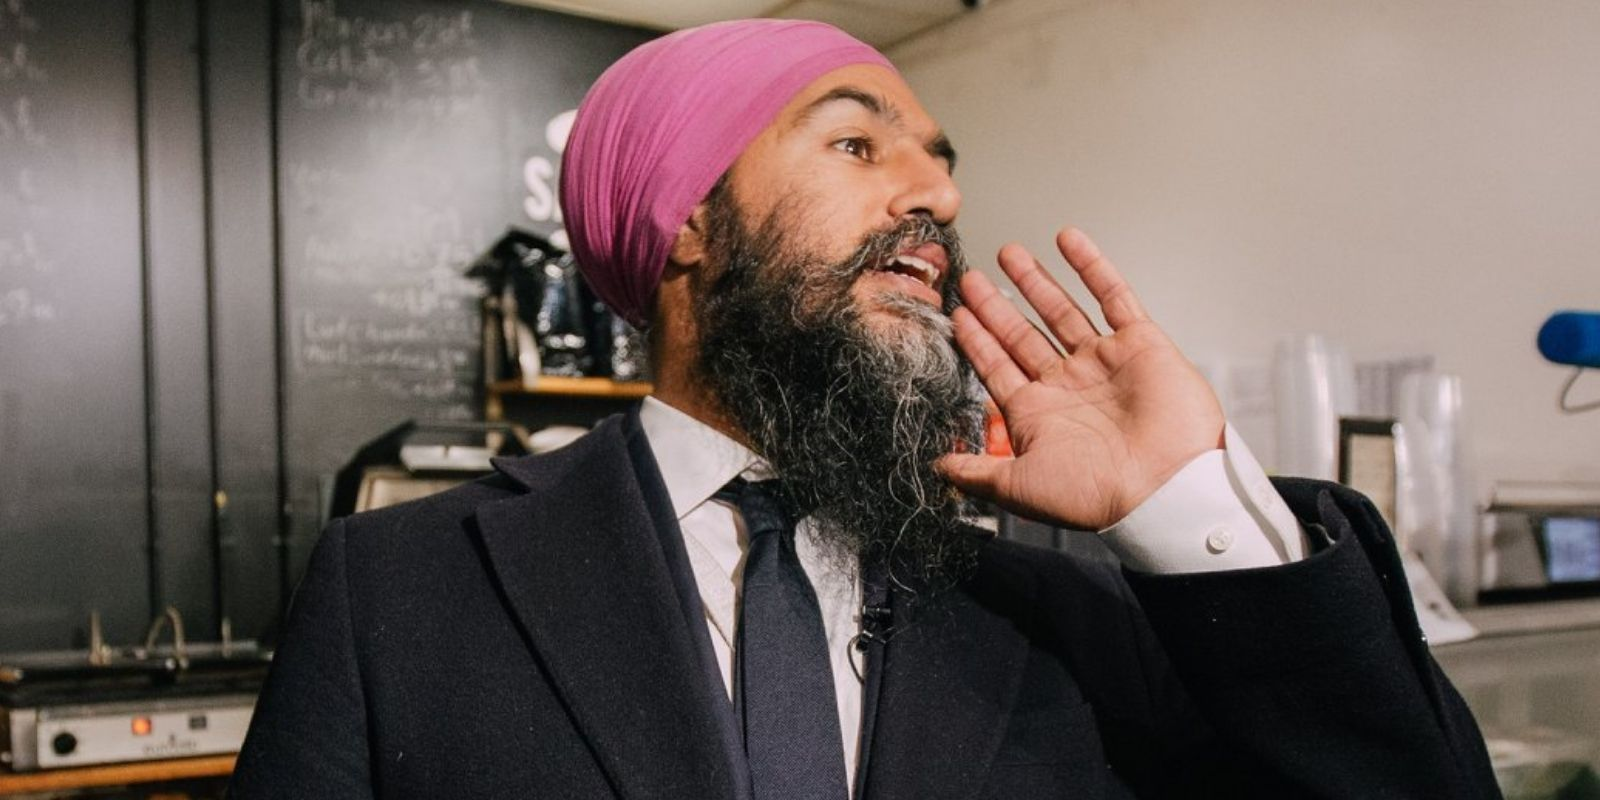 WATCH: Singh calls for halt of arms sales from Canada to Israel